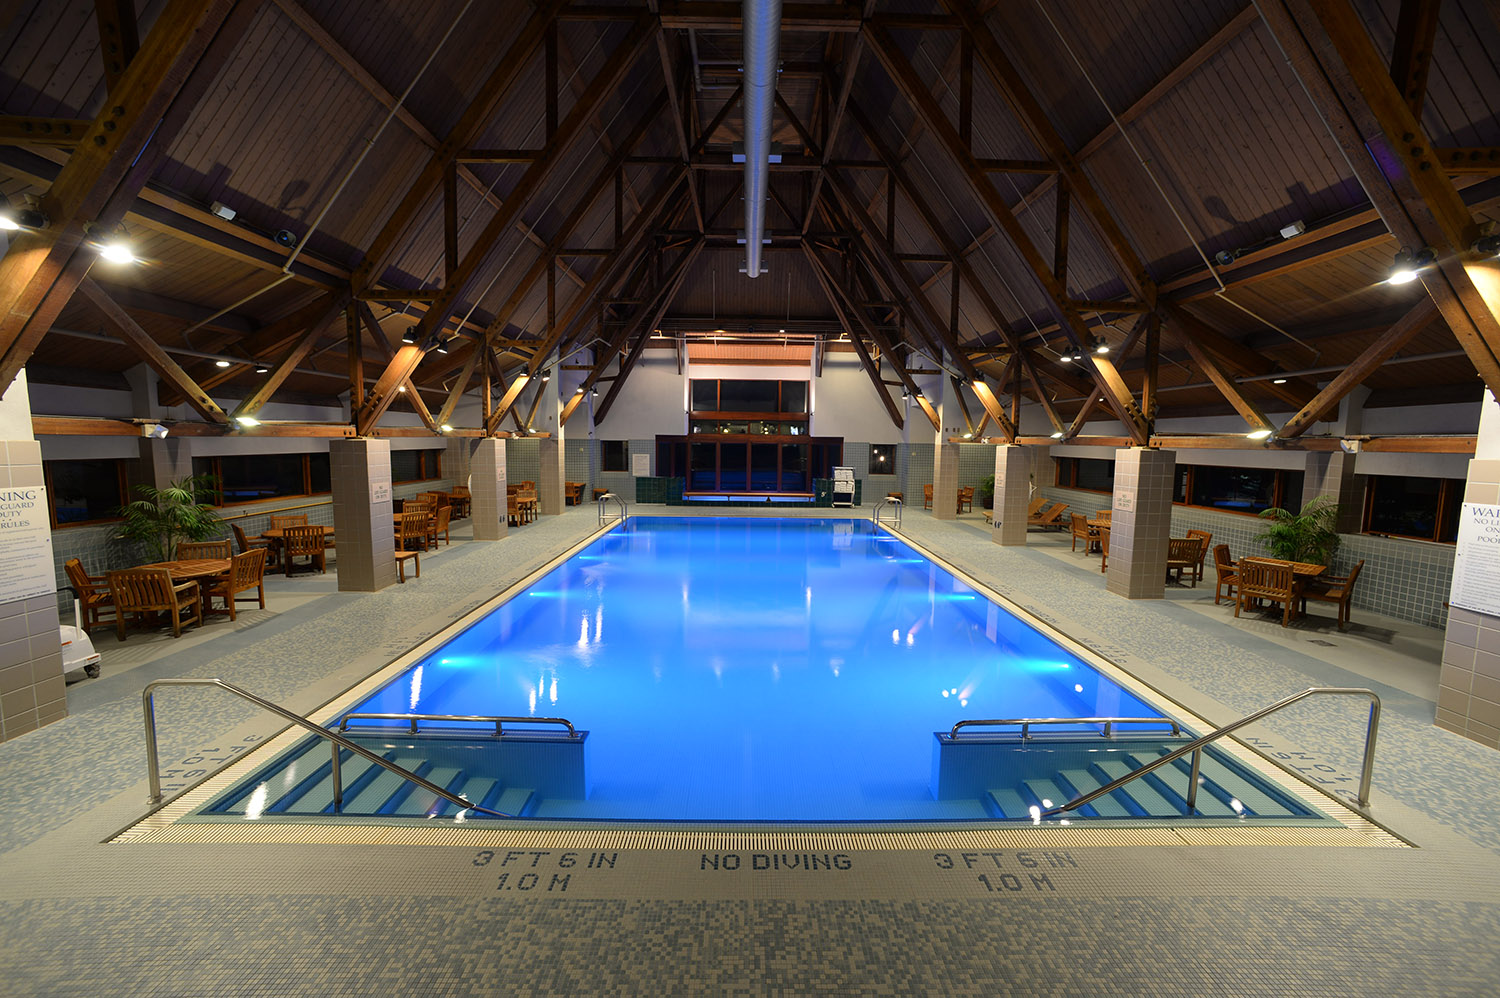 Resort amenities include an indoor heated 25 x 50 foot lap pool with vaulted wood beam ceilings.